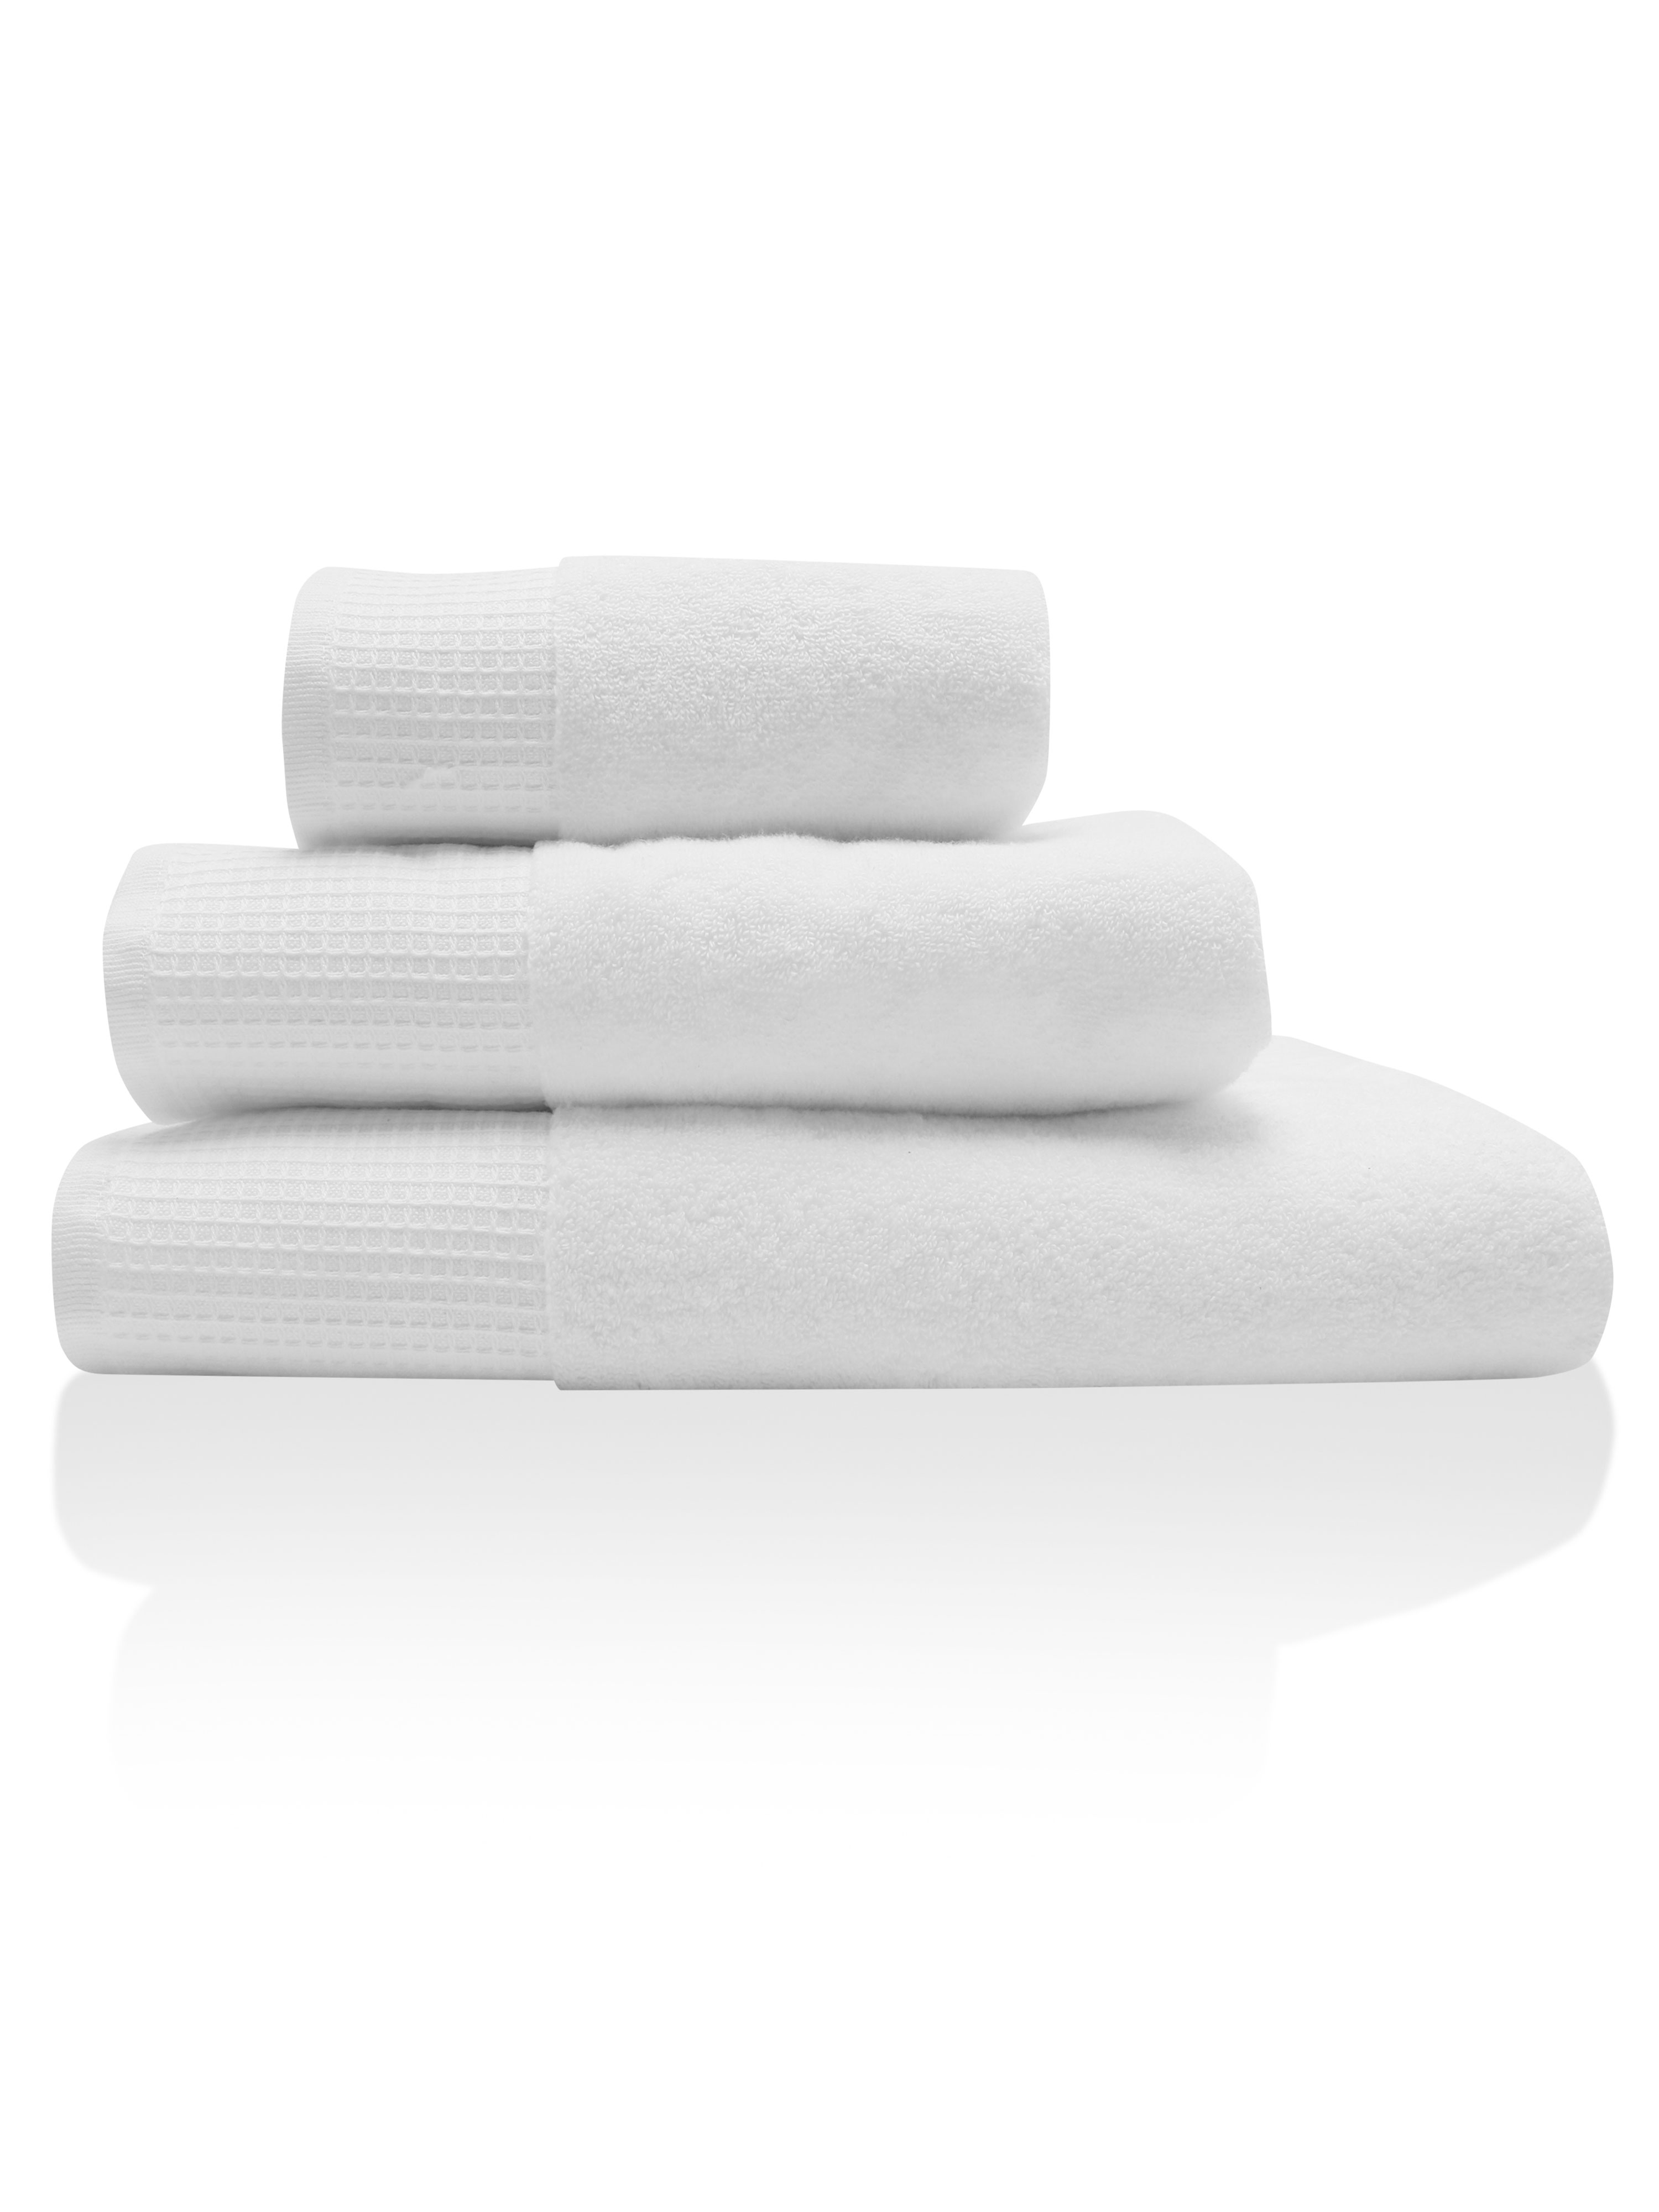 White waffle towels